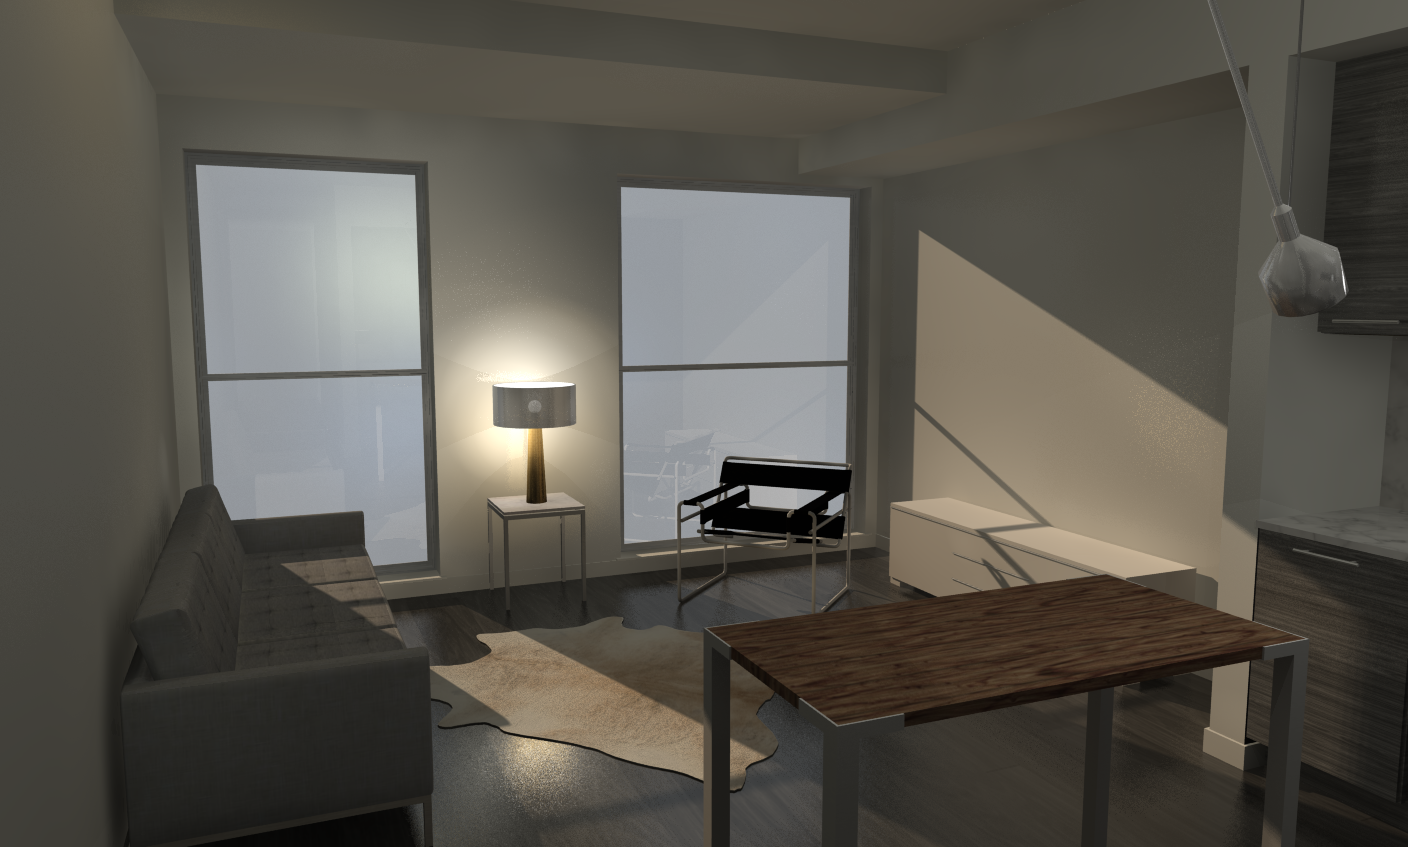 Ustanik - Final Project - Mar 2 - Living Room 2018-03-02 12400300000.png